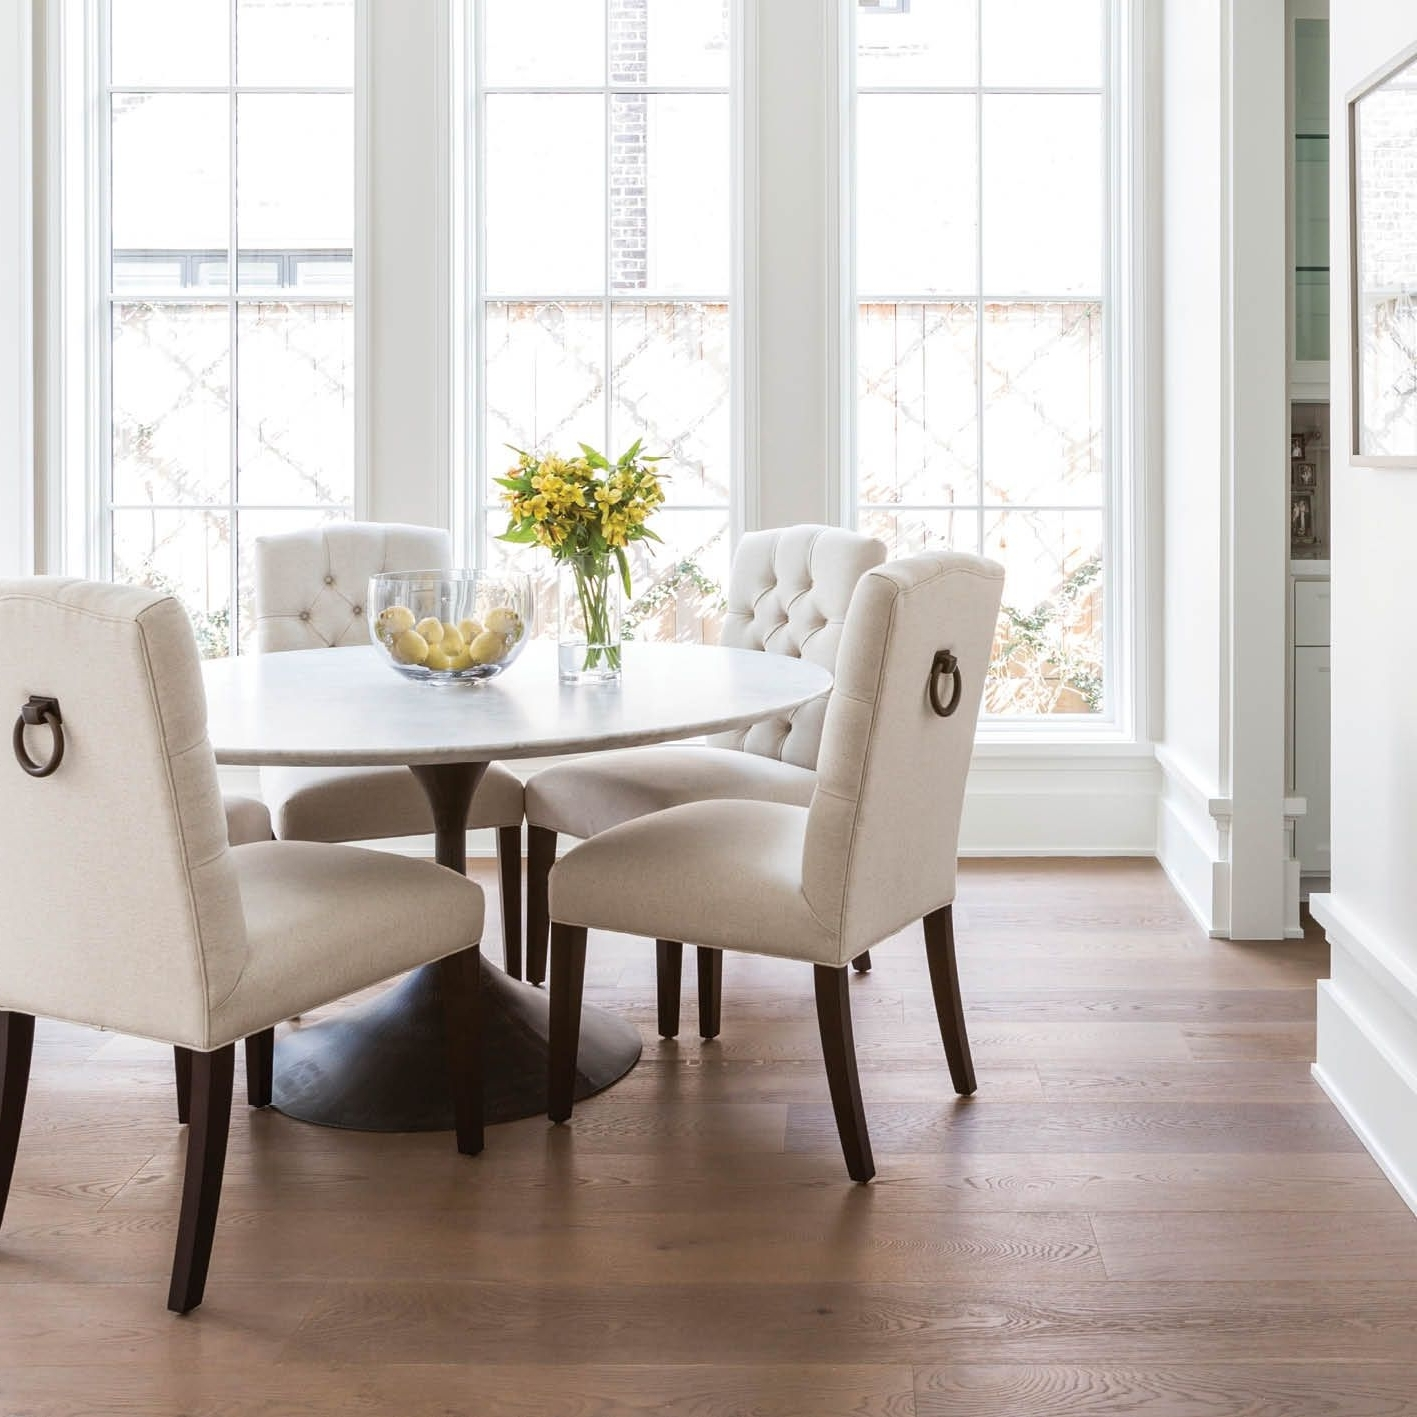 Caden 5 Piece Round Dining Sets With Upholstered Side Chairs Pertaining To Most Recently Released Marie Flanigan Interiors – Citybook Guiding Light – Bright Breakfast (View 22 of 25)